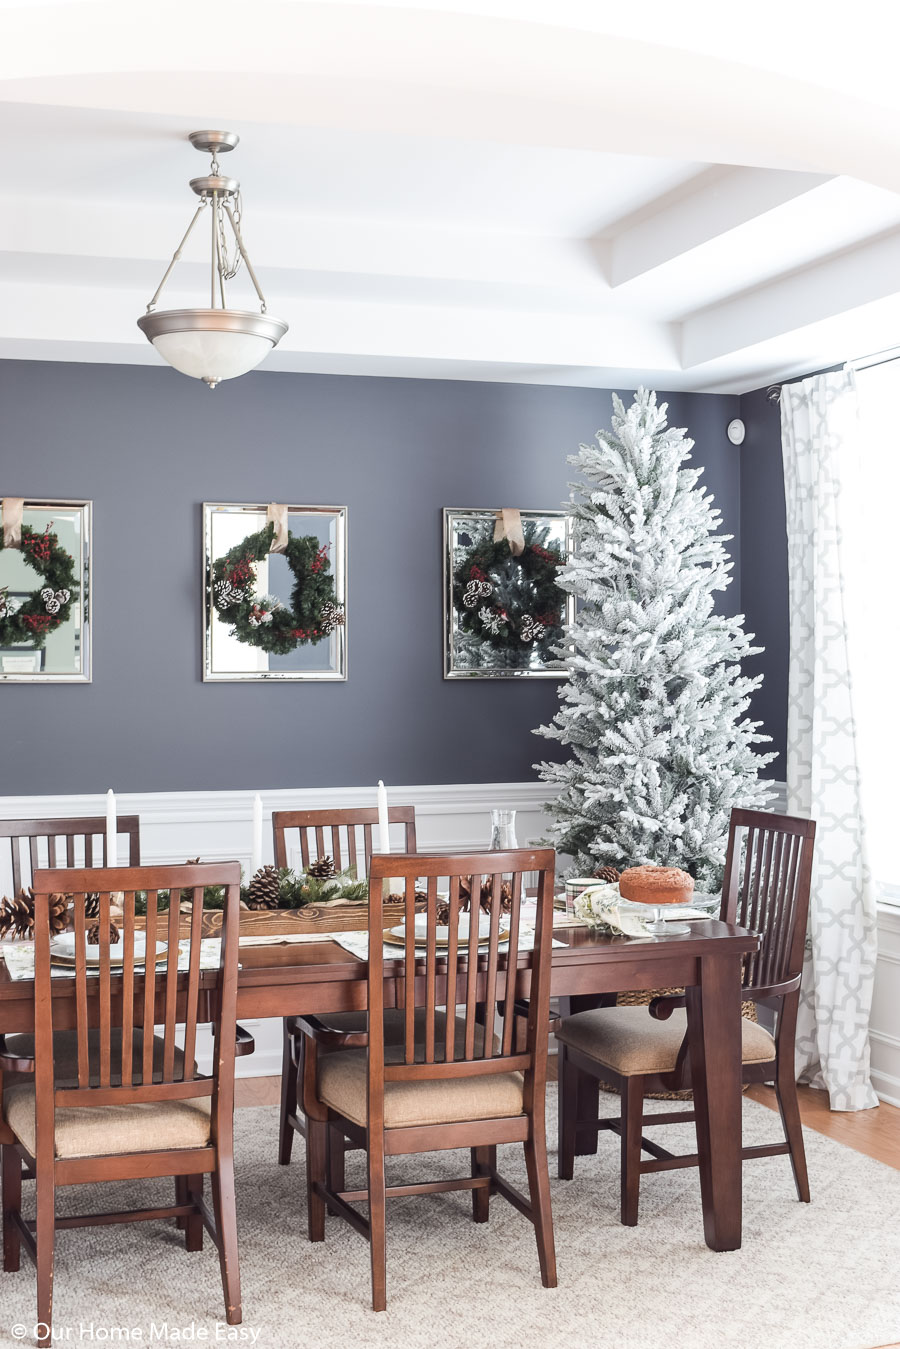 The simplicity if our Christmas dining room decor is bright and festive